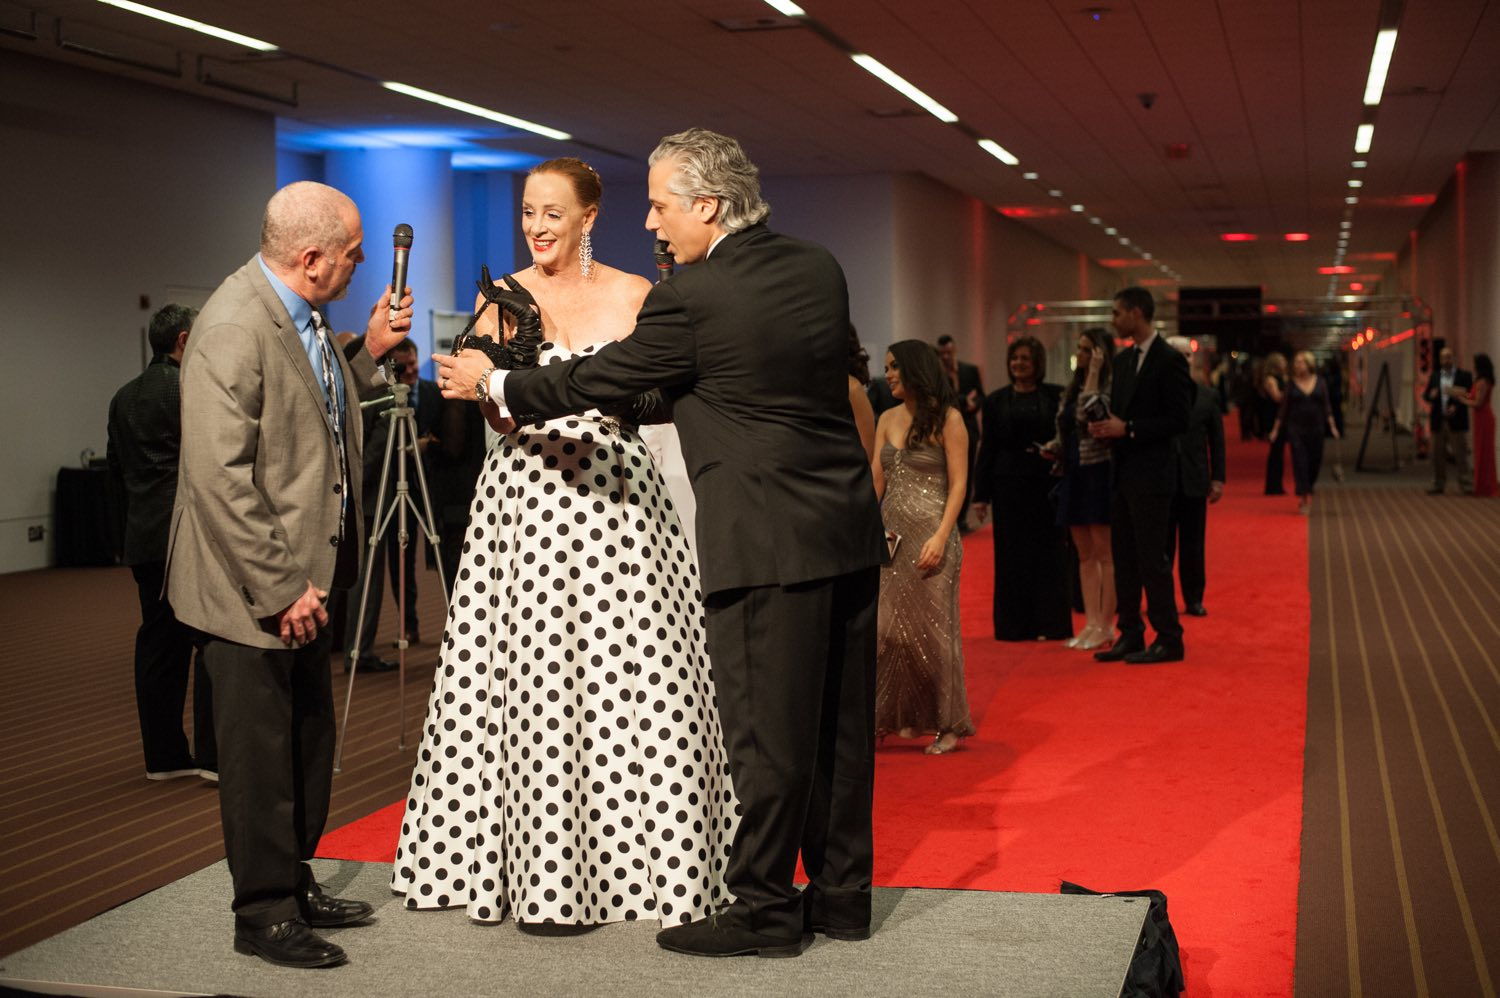 """100.7 Star's Bubba interviews Anne Stone on the red carpet with the help of Emilio Cornacchione at the Pittsburgh Film Office's """"Lights! Glamour! Action"""" Oscars party on Sunday, Feb. 26, 2017 at the David L. Lawrence Convention Center in downtown Pittsburgh. (Stephanie Strasburg/Pittsburgh Post-Gazette)"""